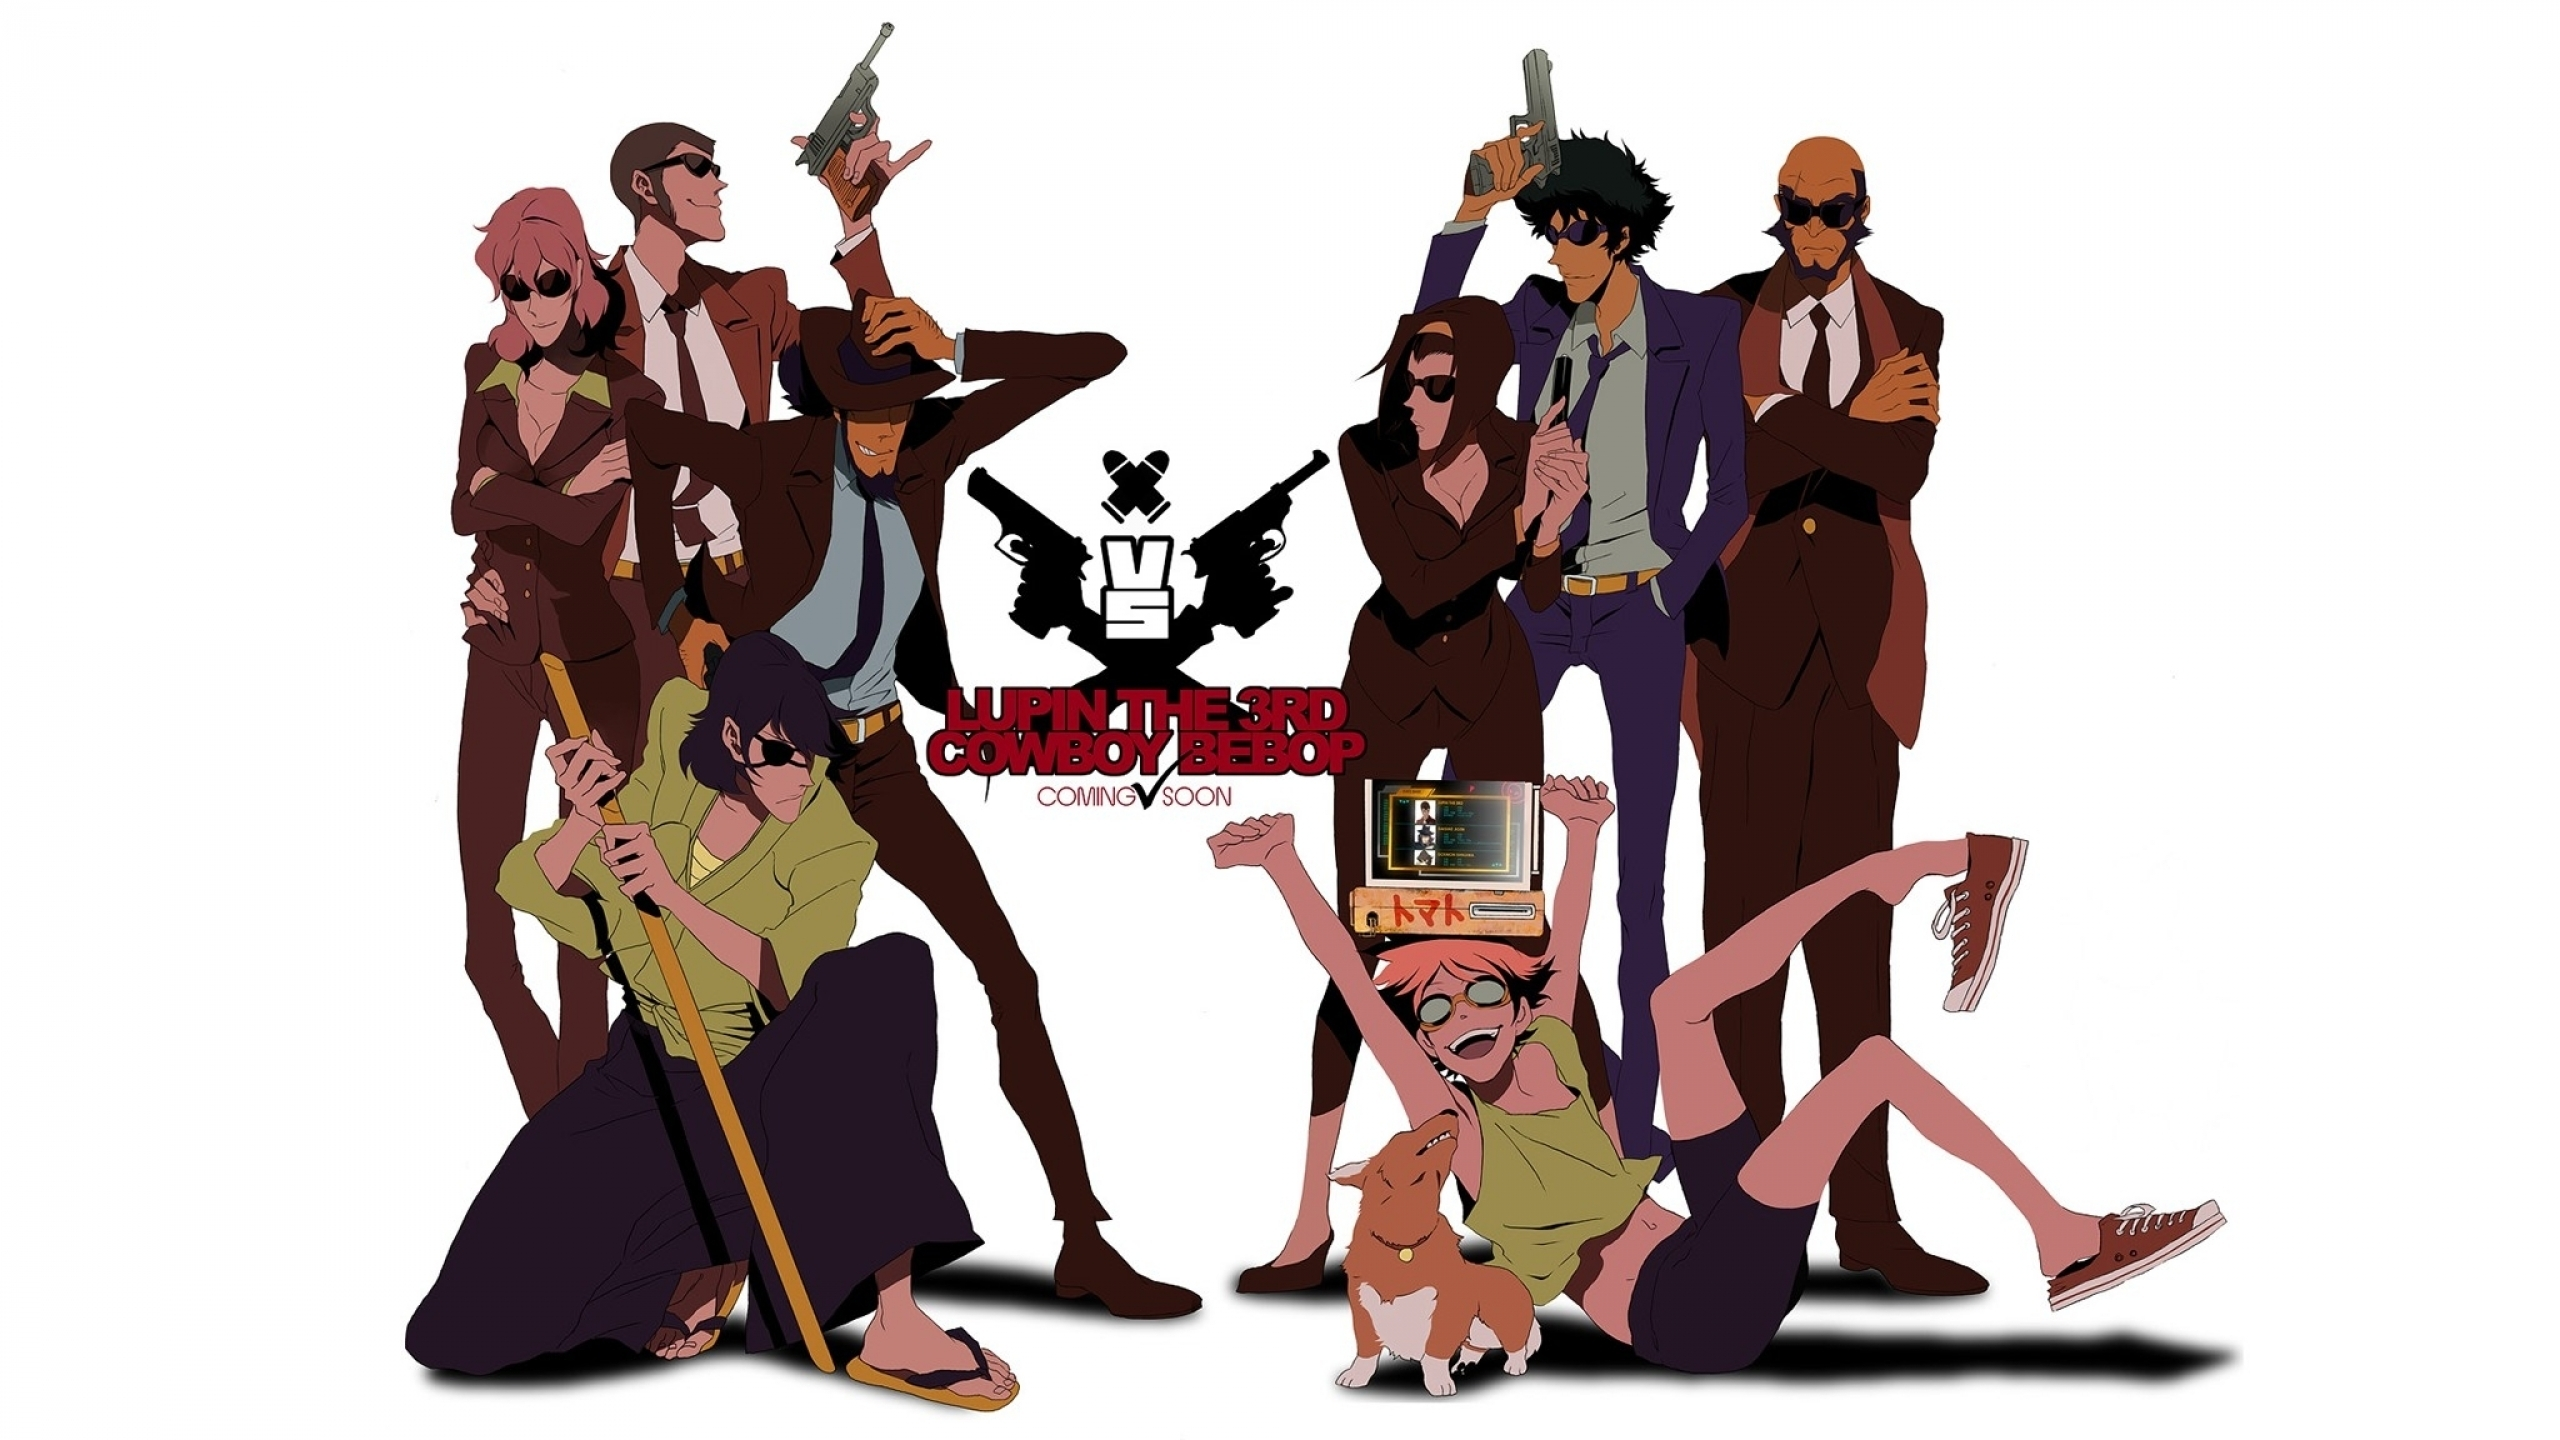 lupin the third wallpaper | 2560x1440 | id:60196 - wallpapervortex